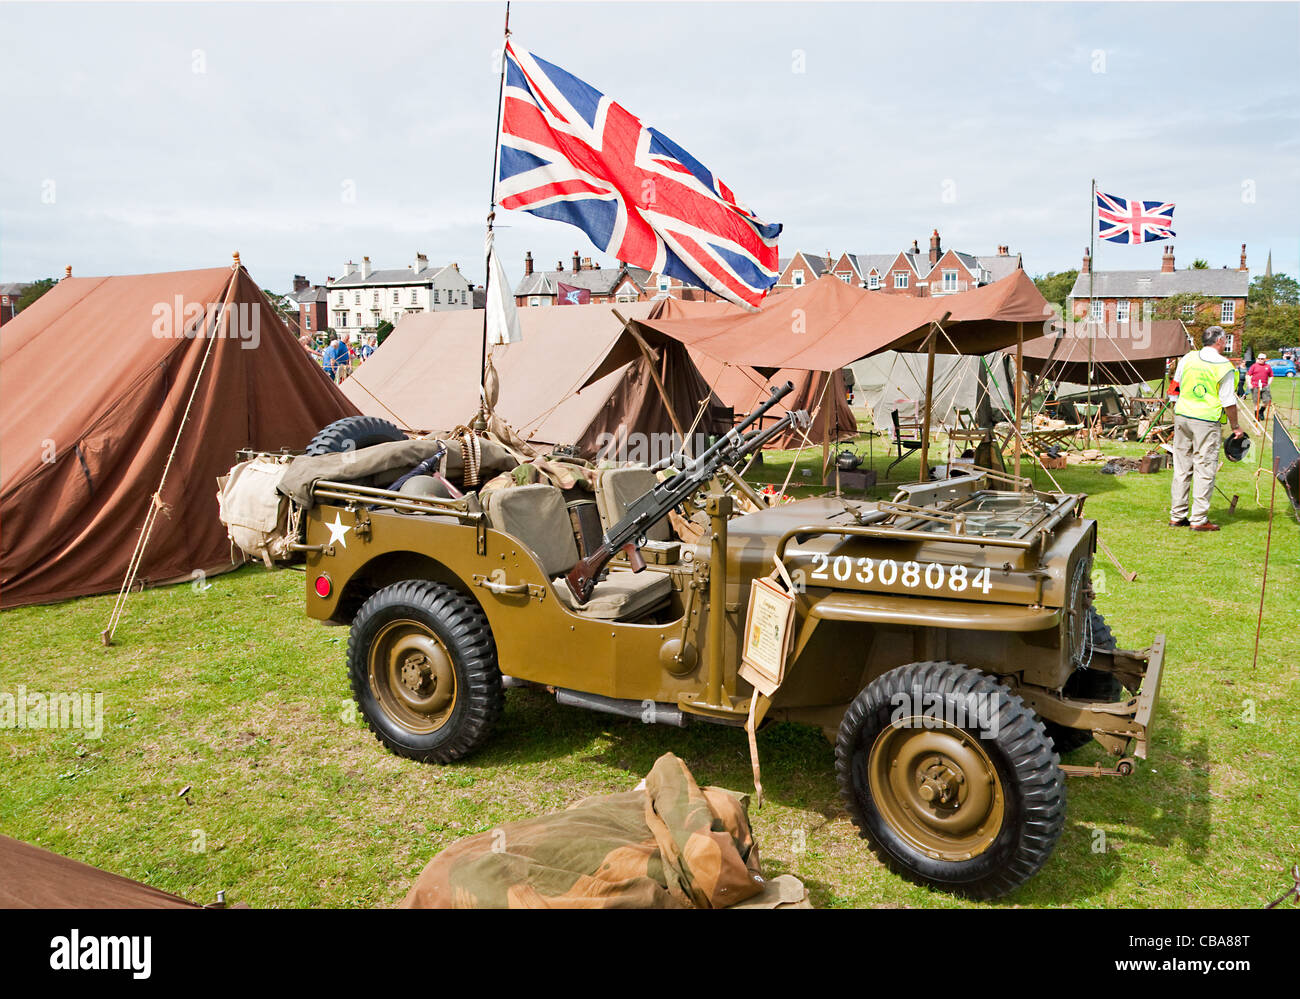 Ww2 Jeep For Sale >> Restored and preserved WWII-vintage Willys Jeep with mounted Bren gun Stock Photo, Royalty Free ...